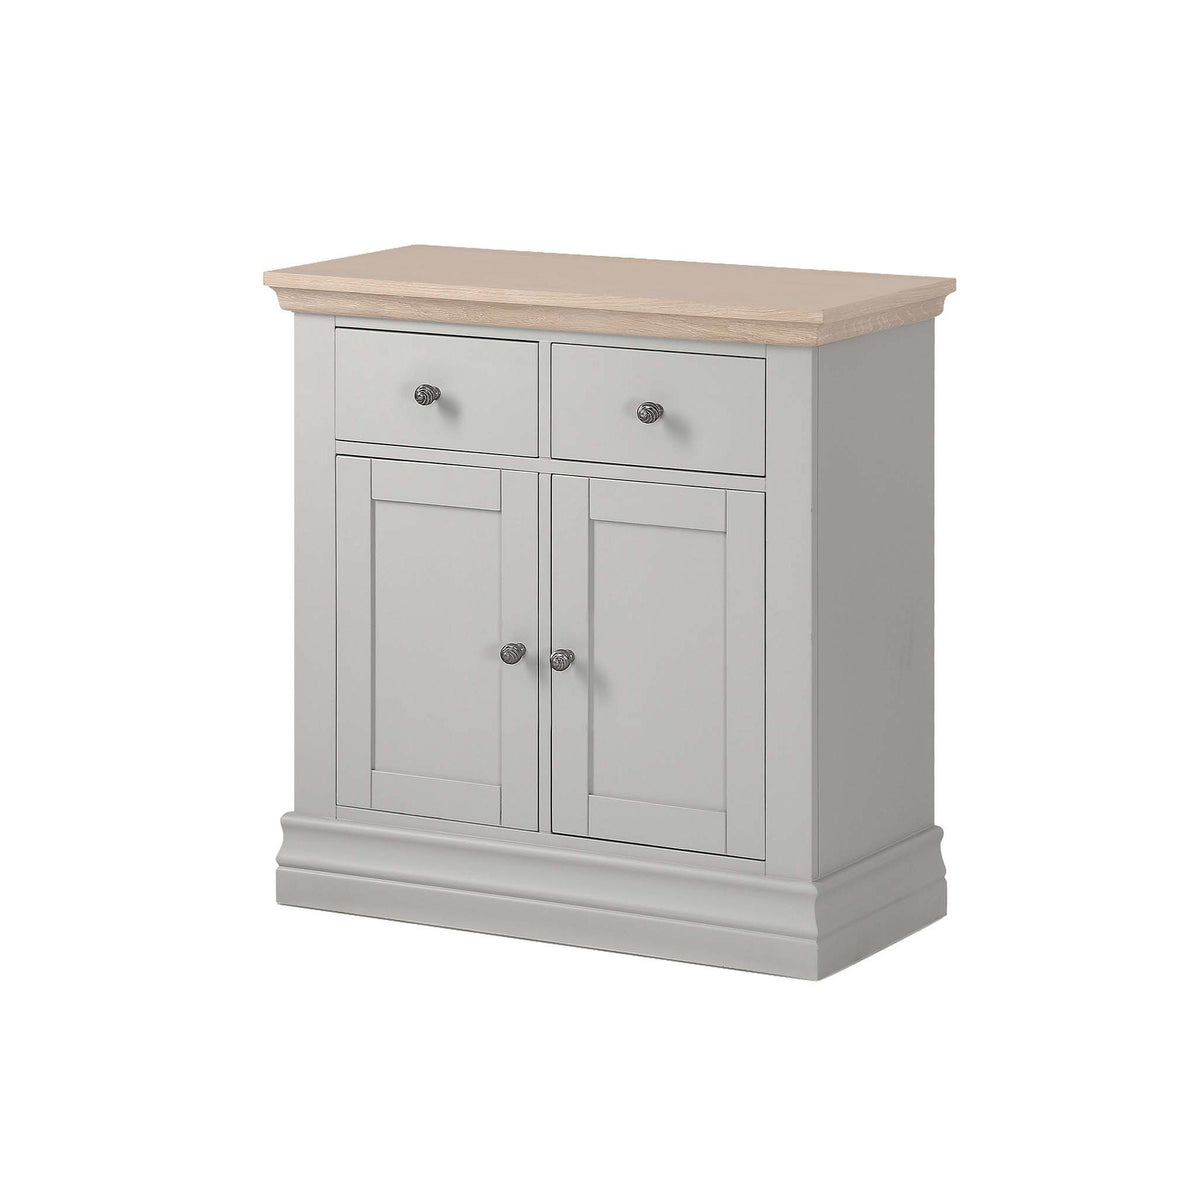 Melrose Grey Mini 2 Door Sideboard from Roseland Furniture